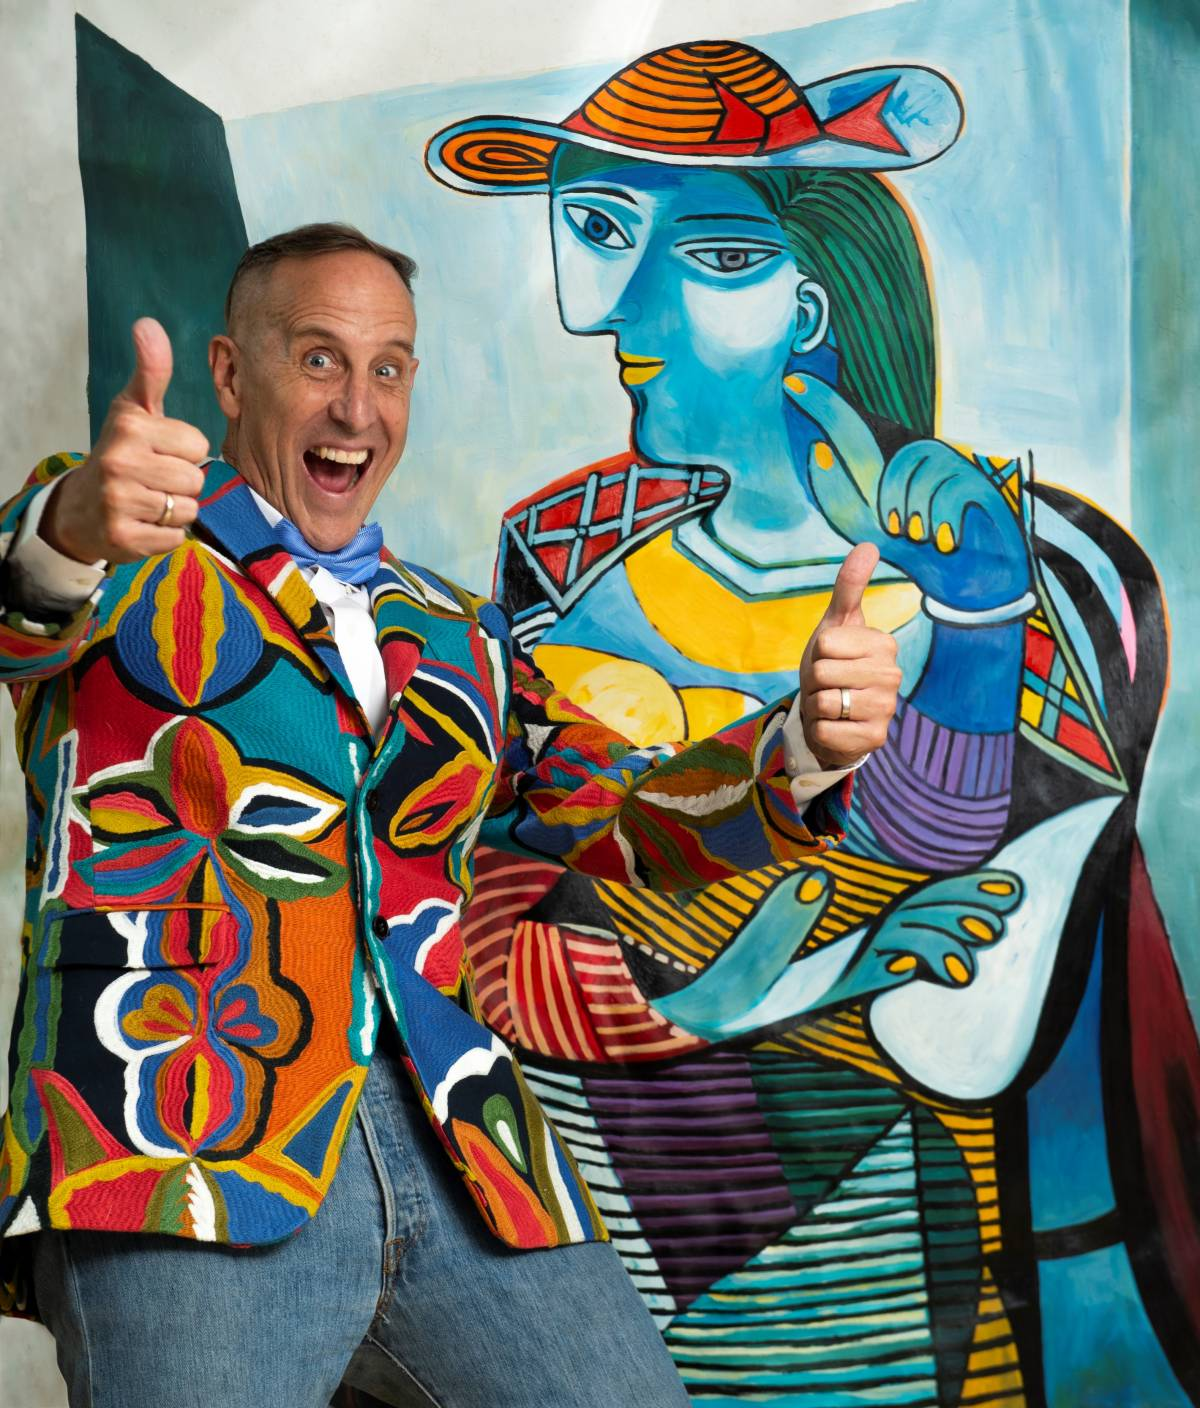 Bill Bensley Artworks in First International Auction to Celebrate World Environment Day